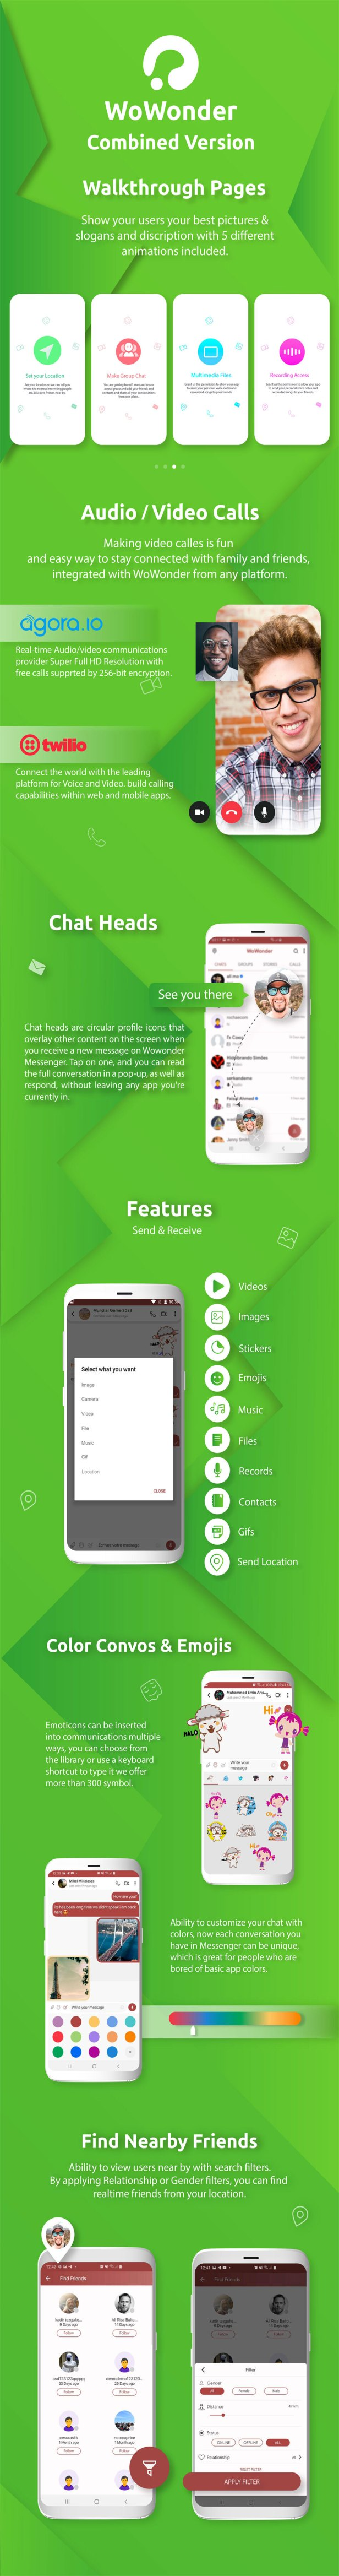 WoWonder Android Messenger - Mobile Application for WoWonder Social Script - 3